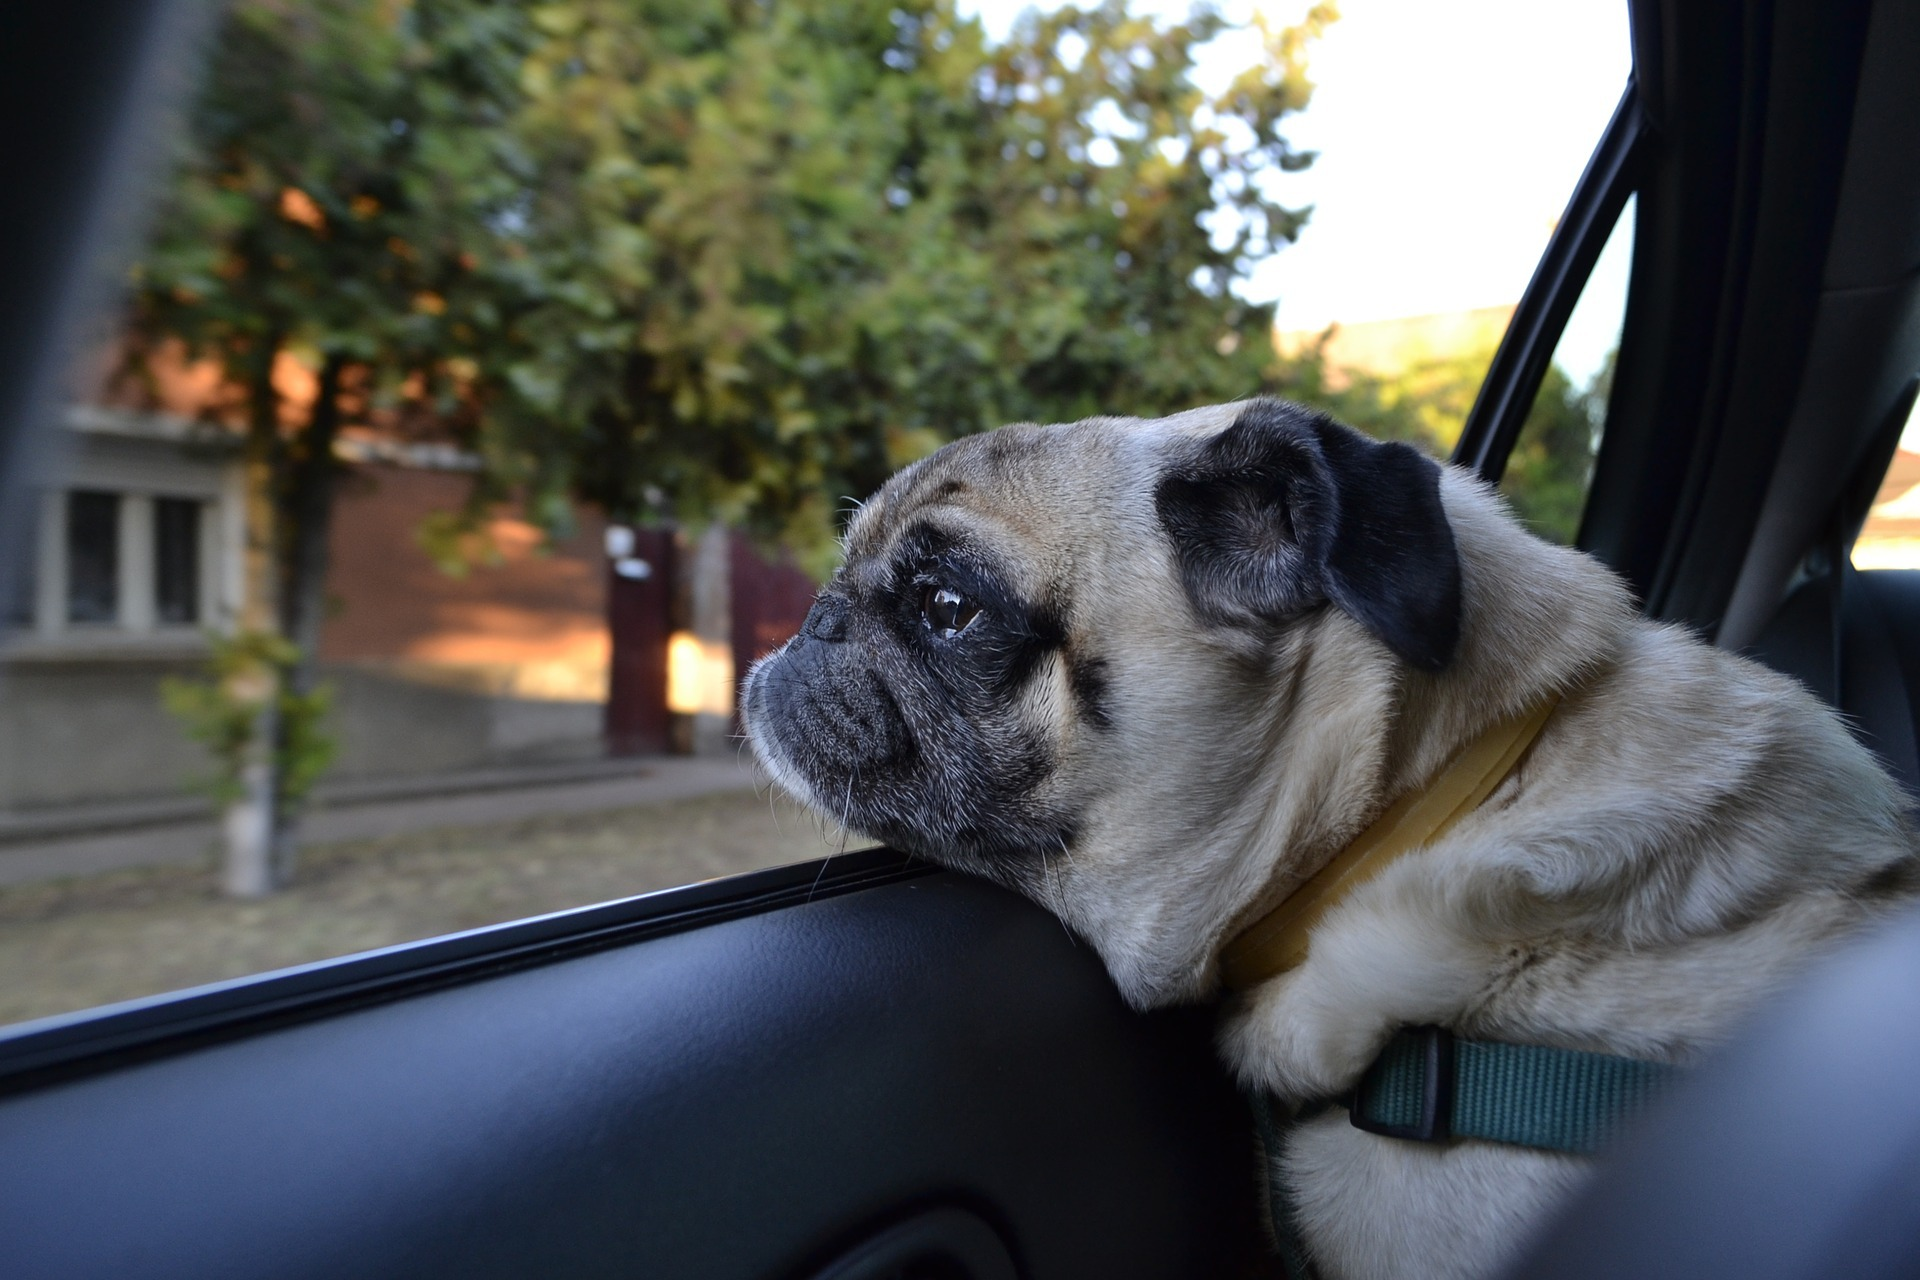 The Scottish SPCA has reported an 80 percent increase in calls about dogs in hot cars during the warm weather. Photo: Pixabay